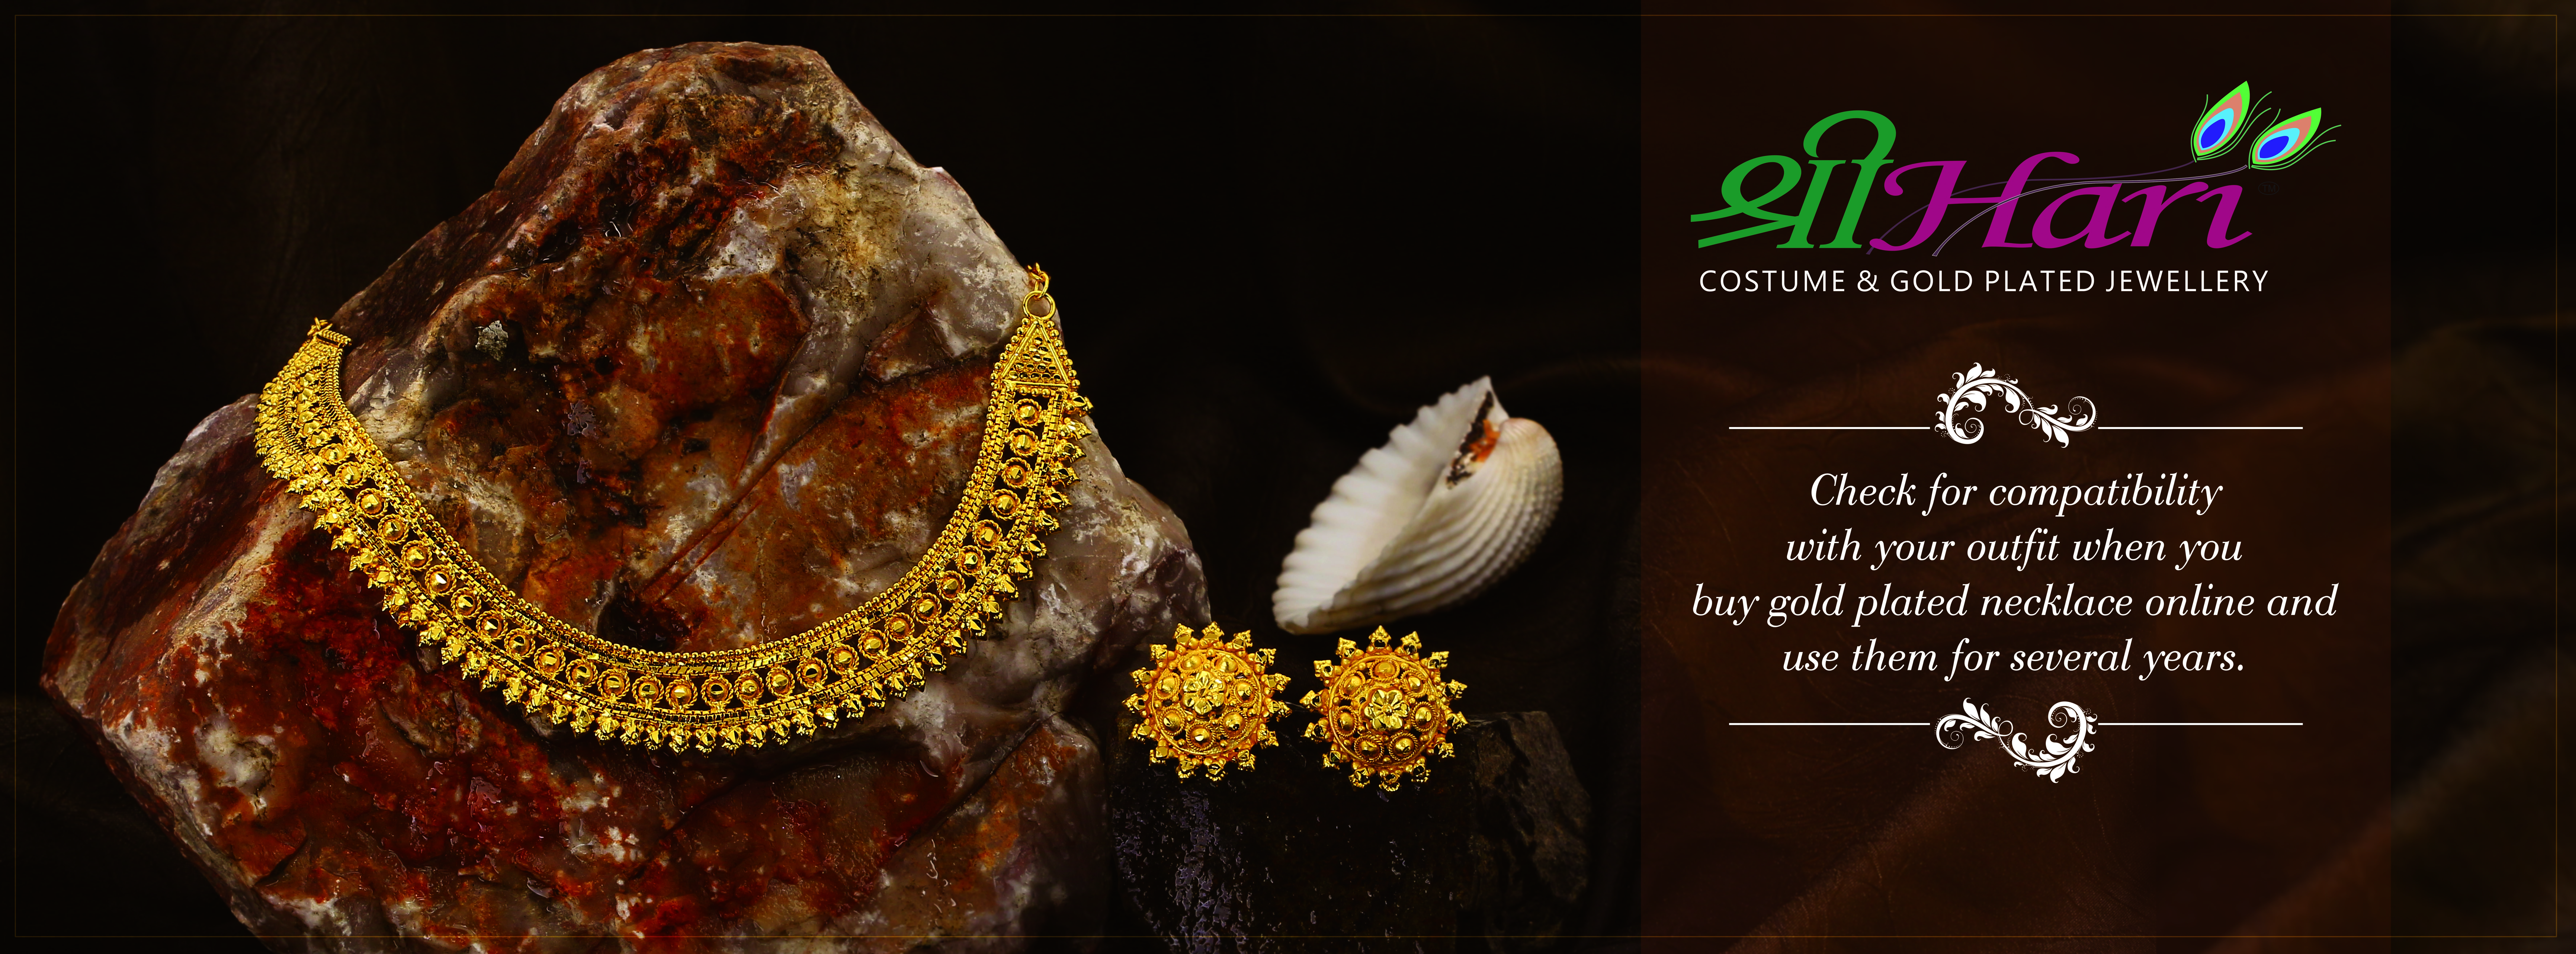 Check for compatibility with your outfit when you buy gold plated ...